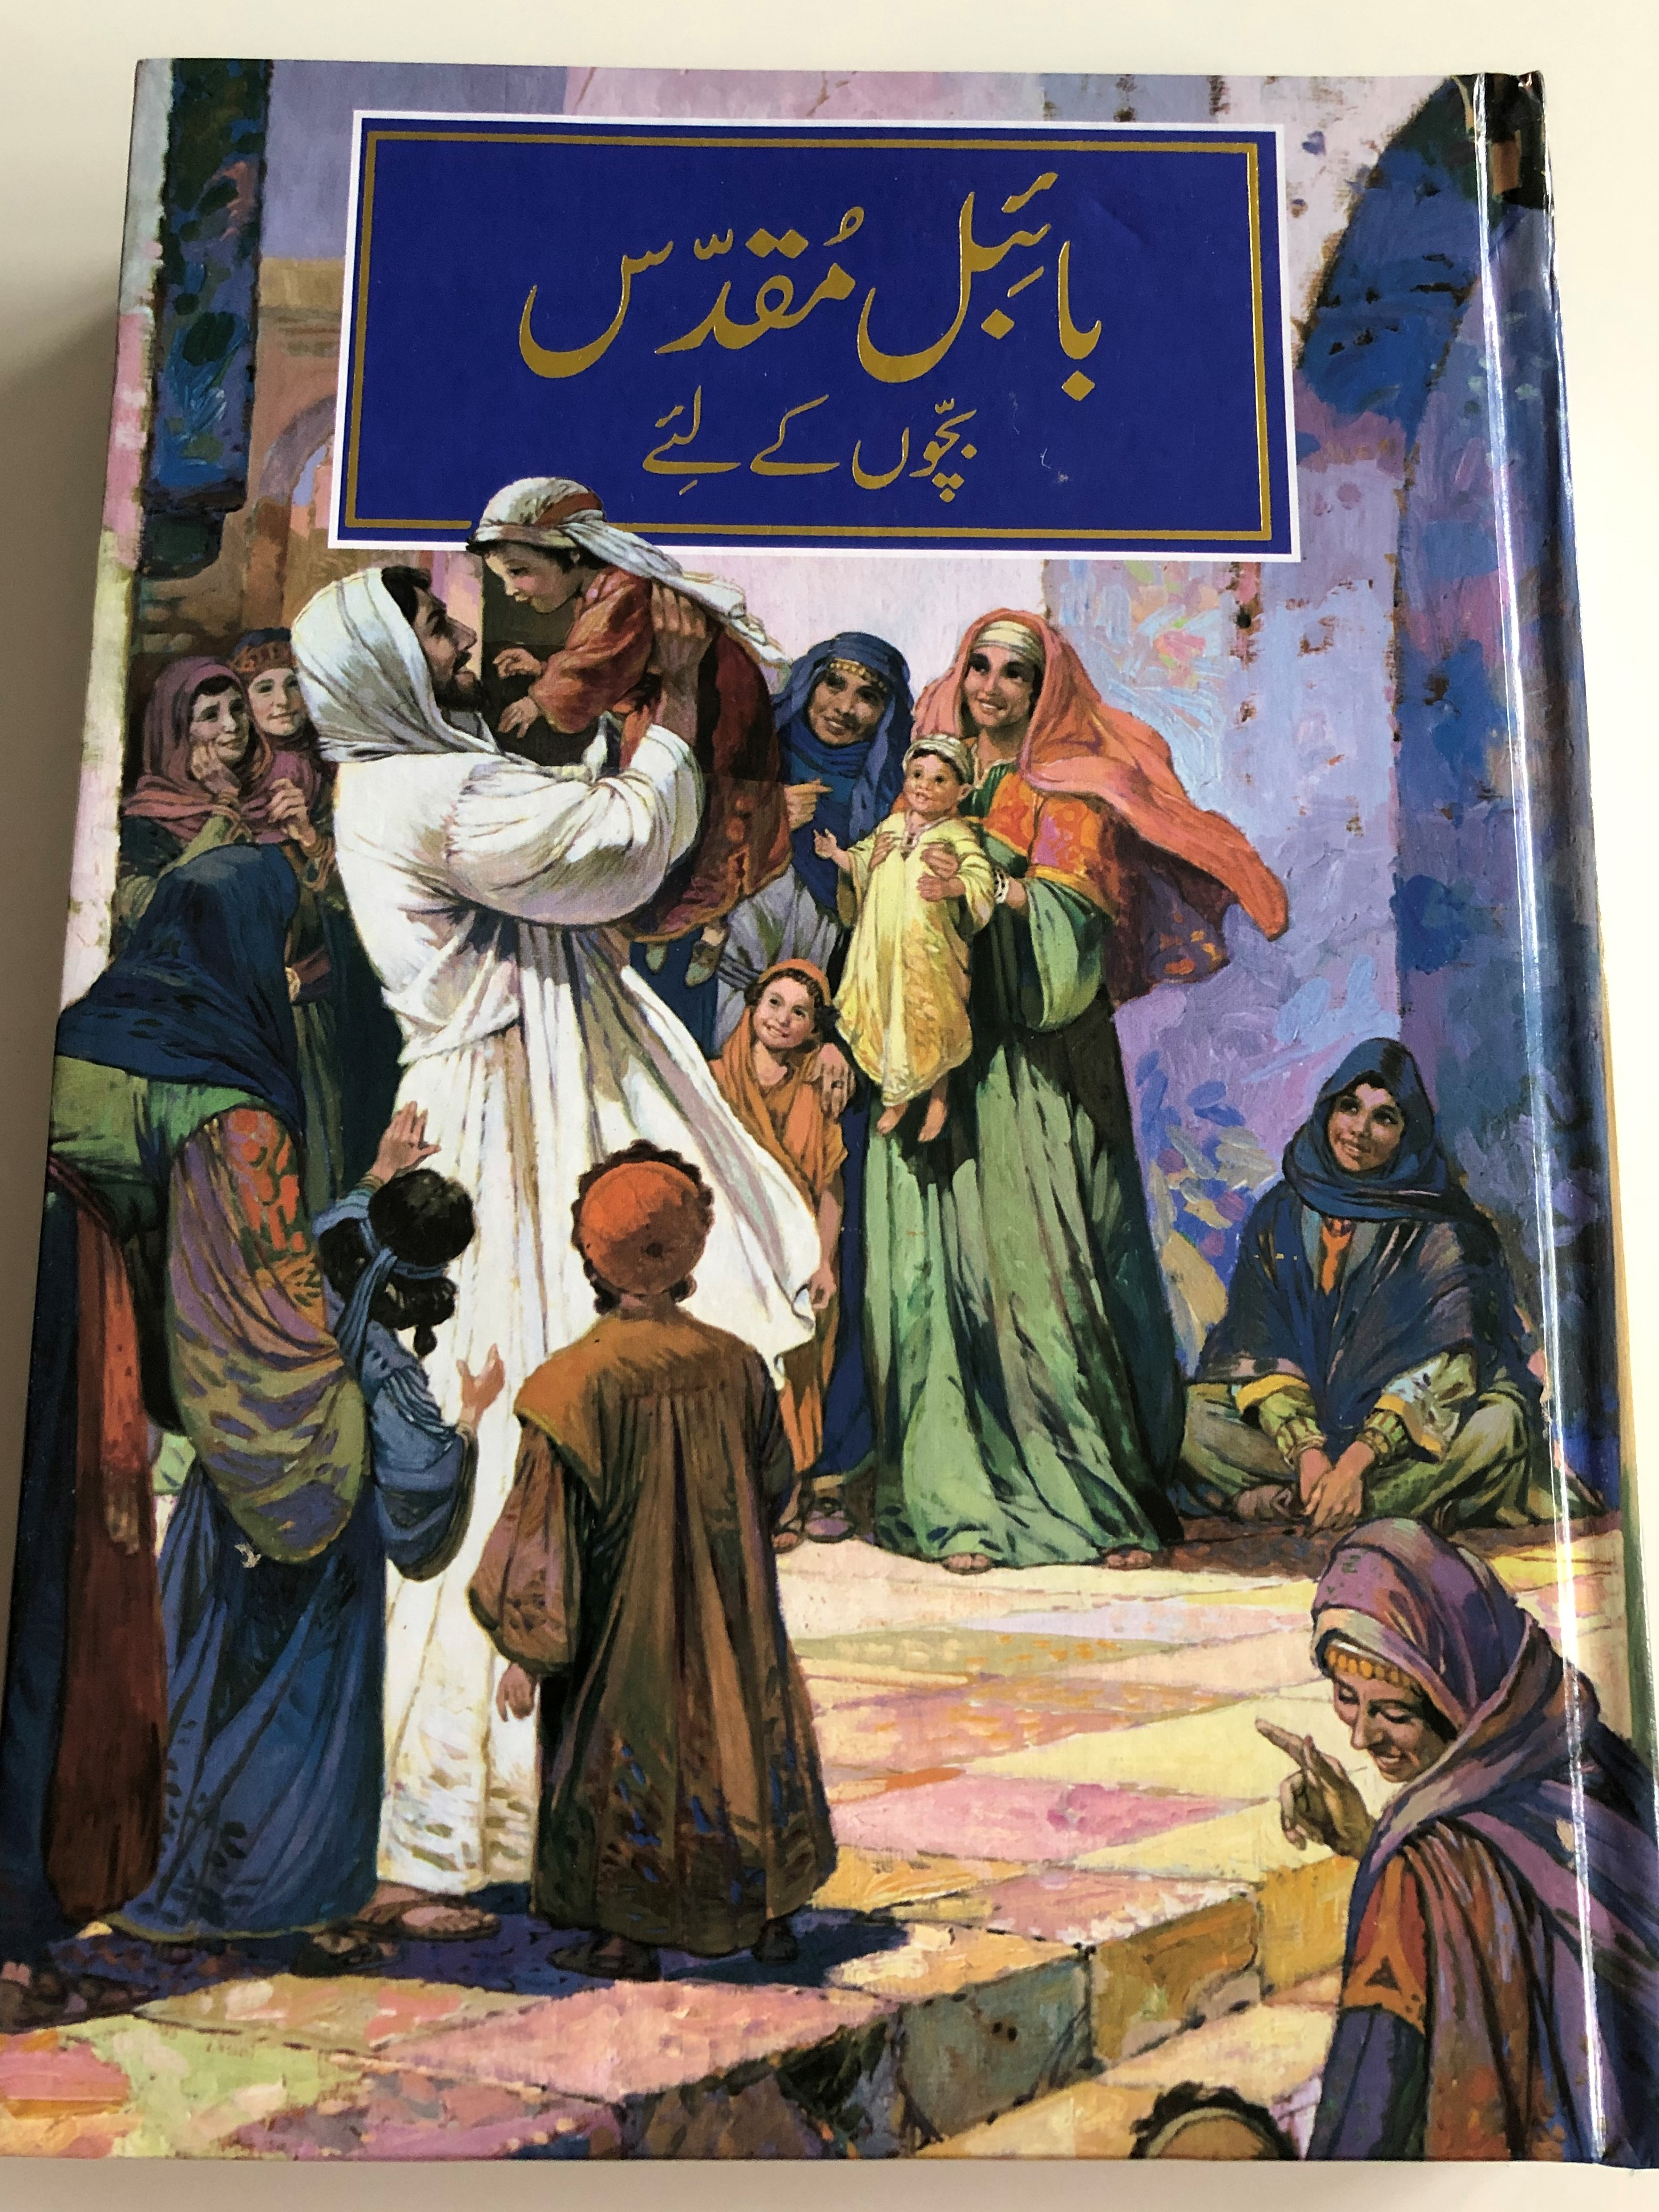 -the-children-s-bible-in-urdu-persian-pakistan-bible-society-2019-illustrated-by-jose-montero-1-.jpg